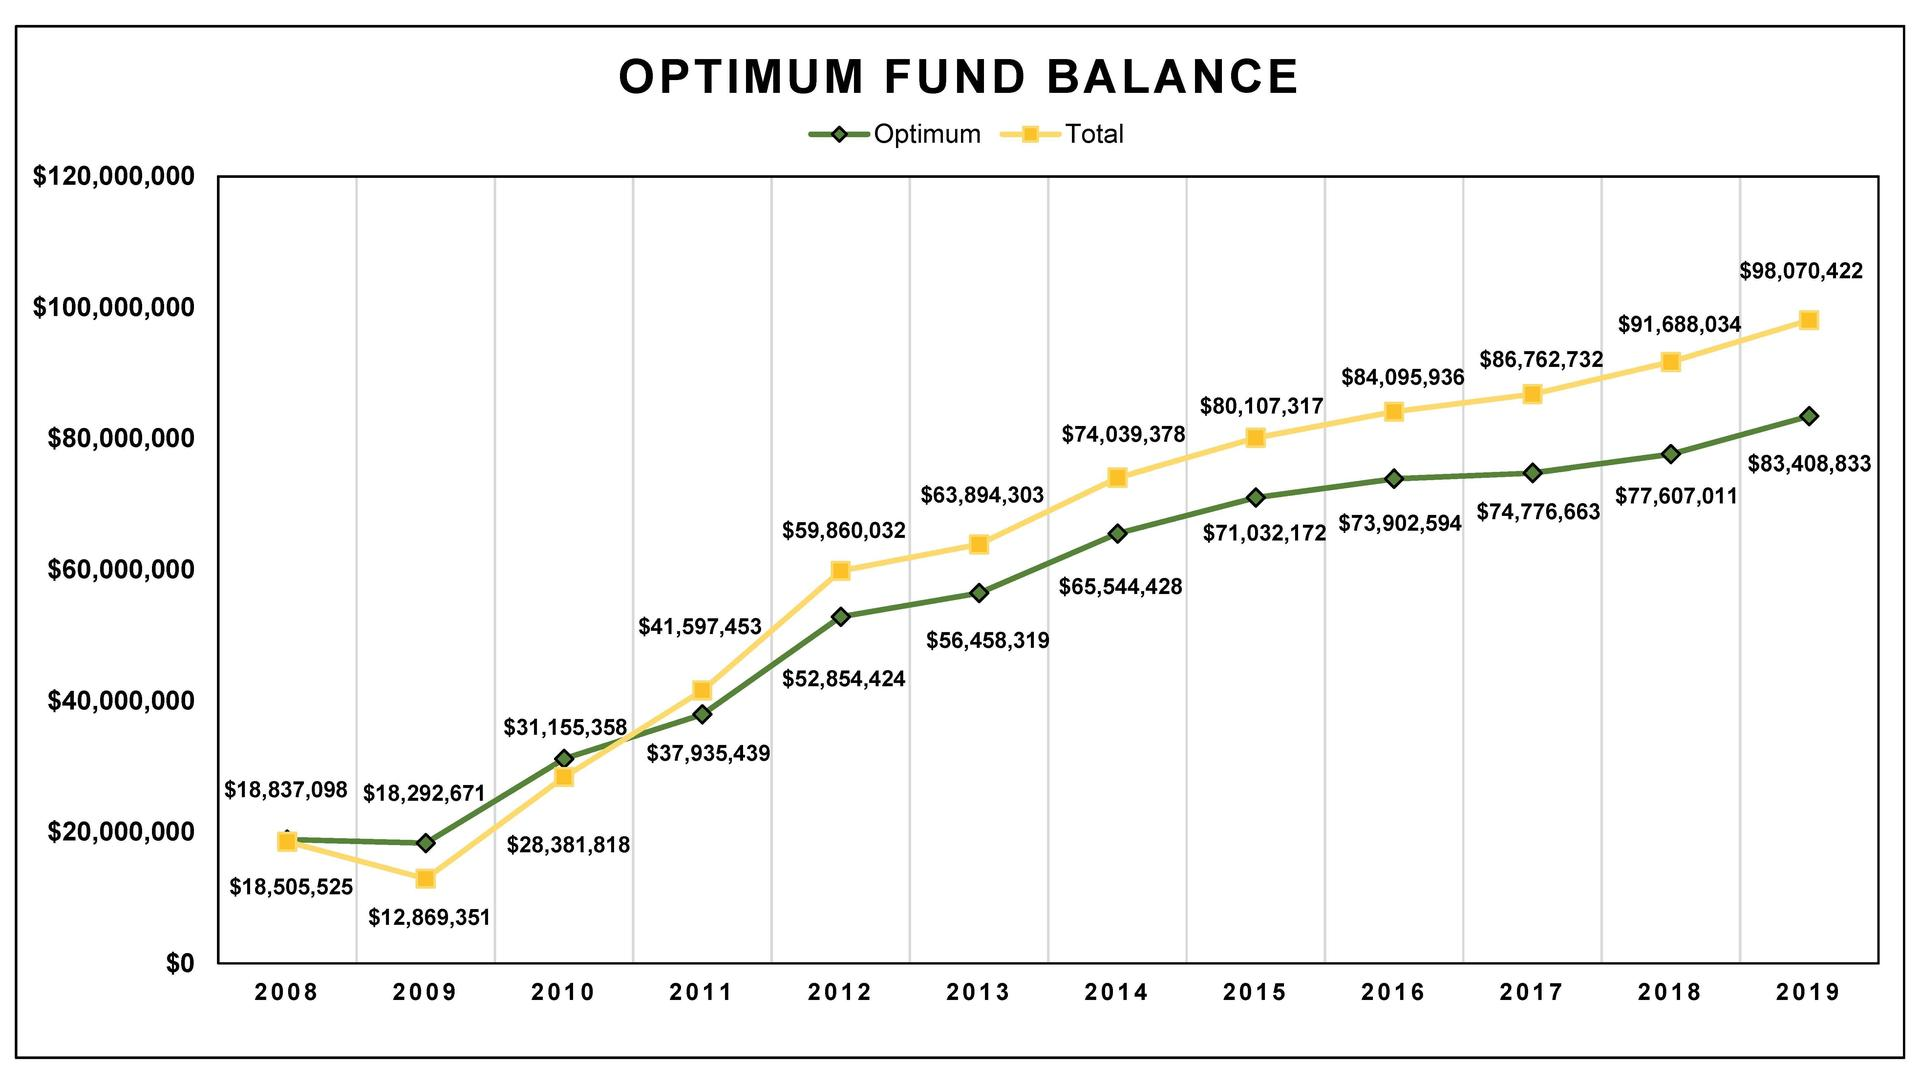 Optimum Fund Balance